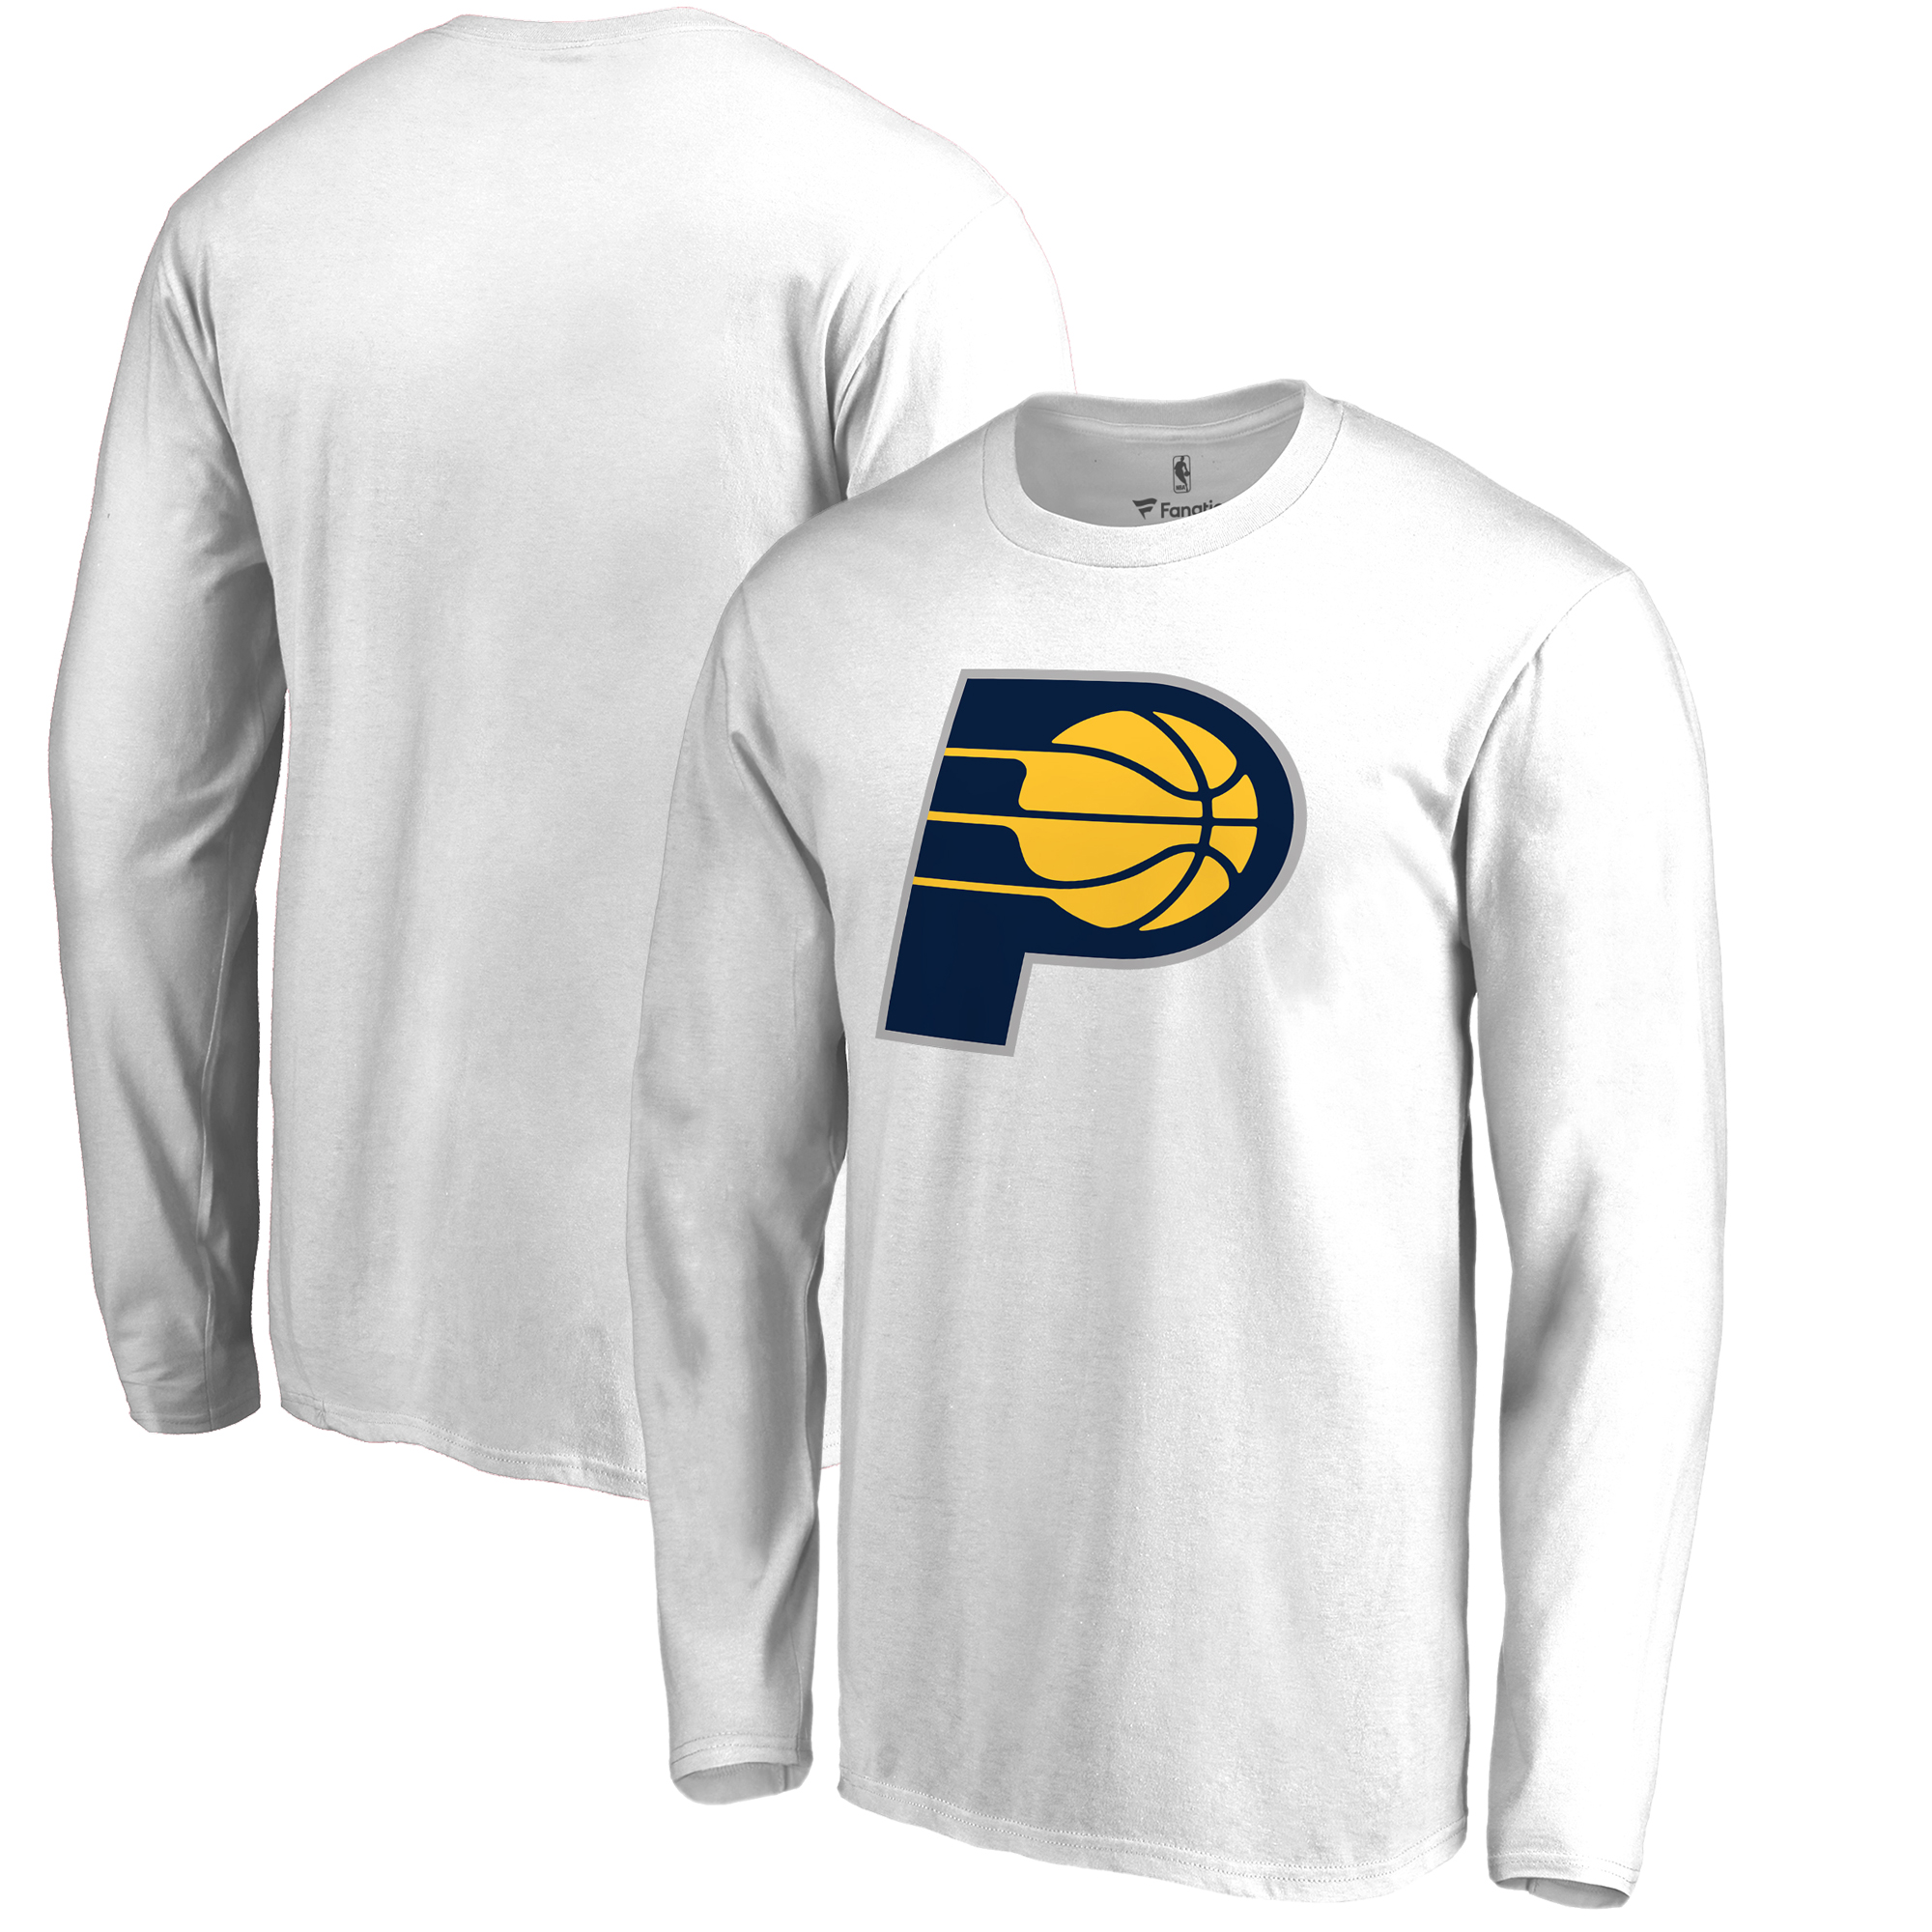 Indiana Pacers Fanatics Branded Big & Tall Team Primary Logo Long Sleeve T-Shirt - White